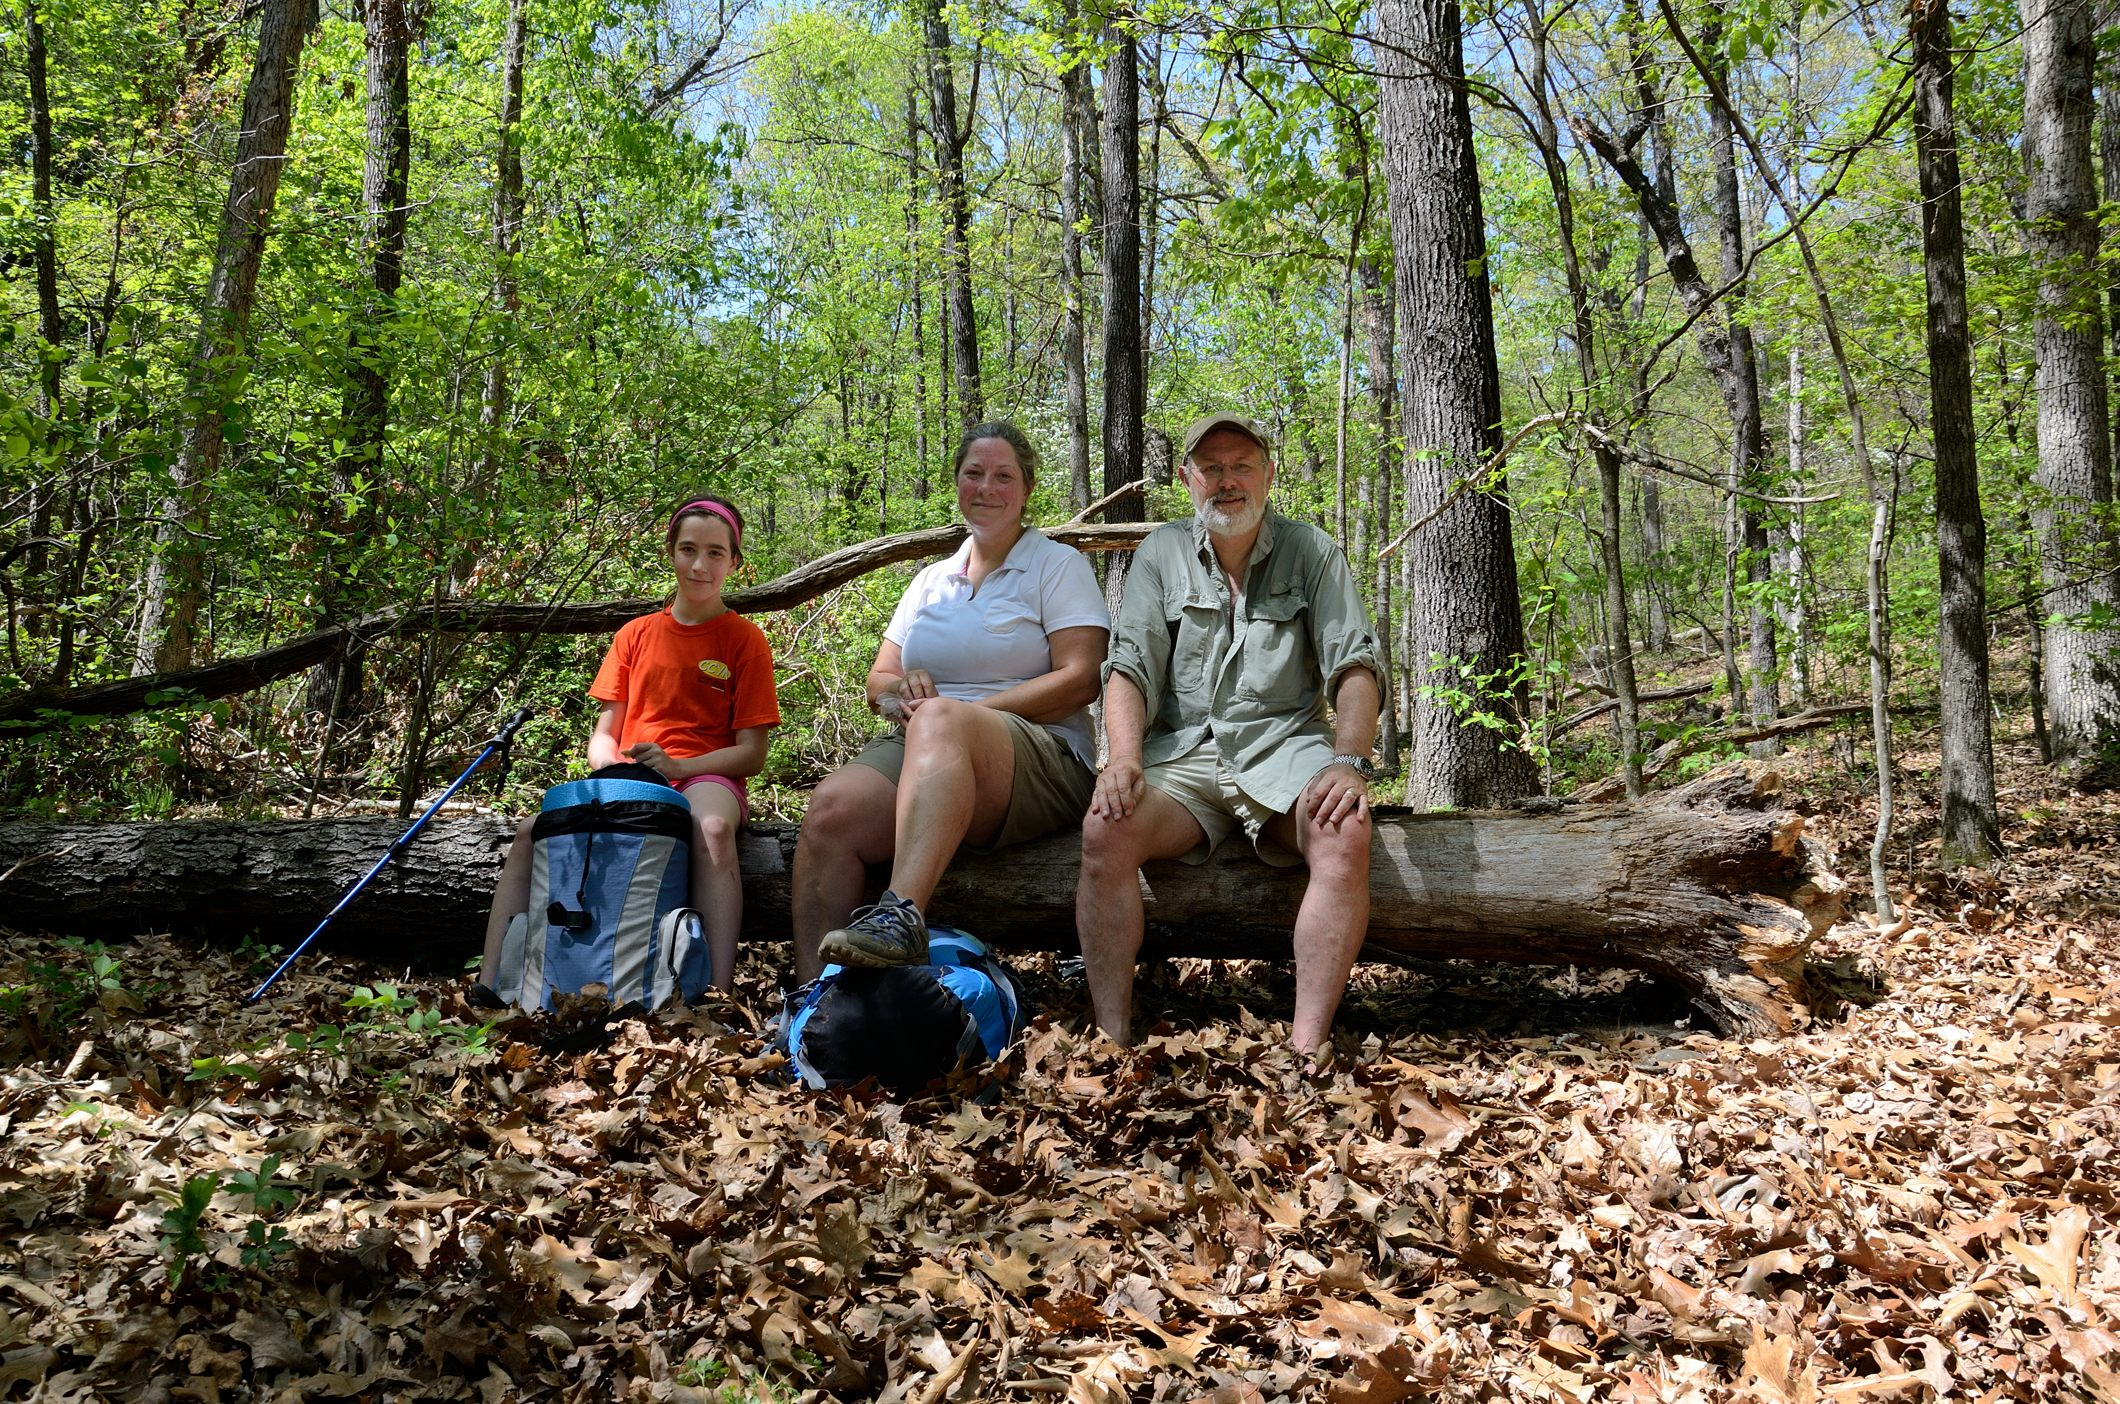 Rest stop - Piney Creek Wilderness